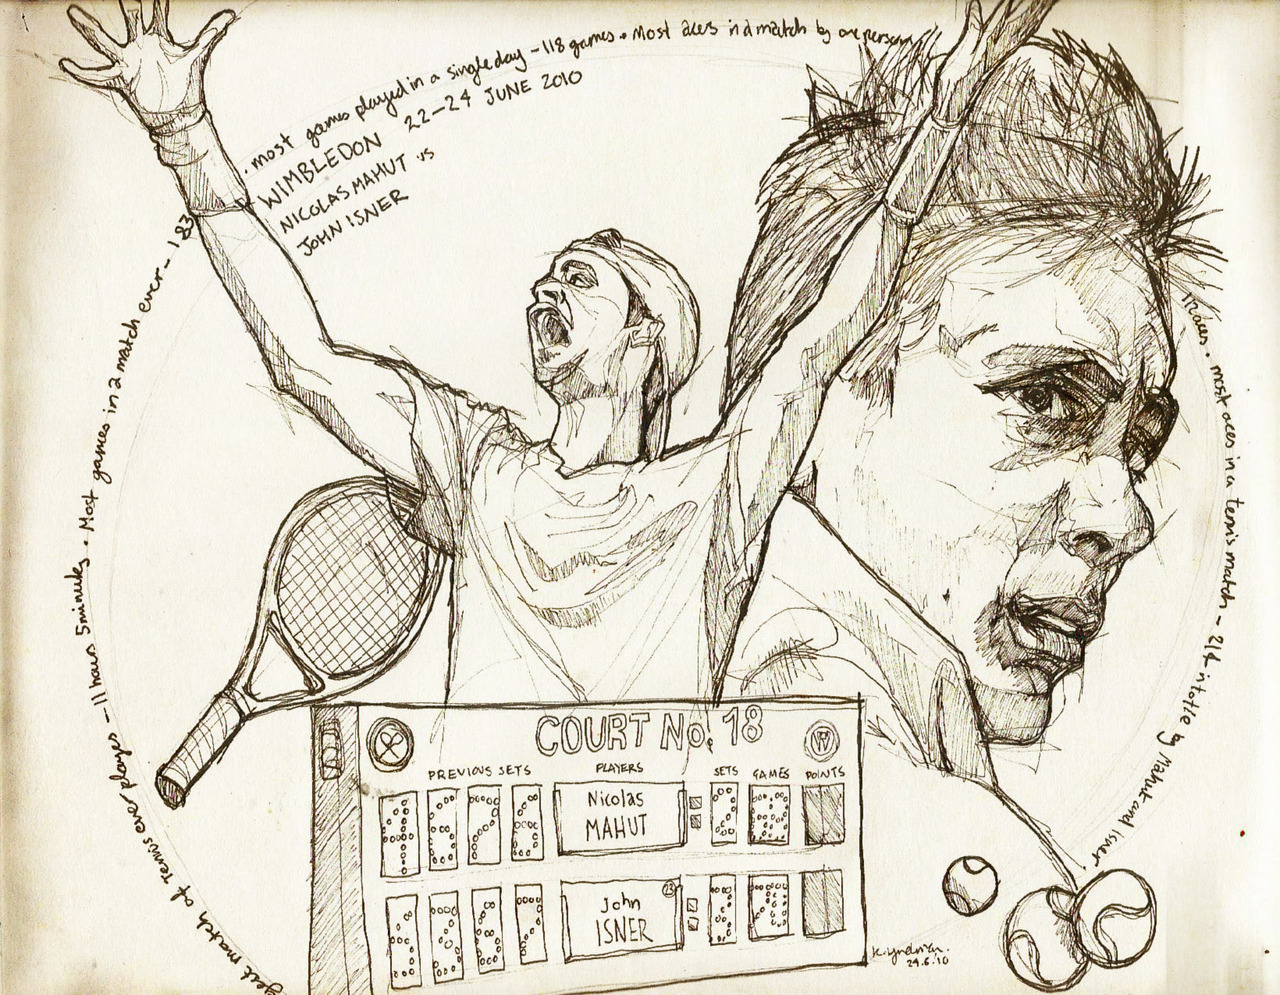 New illustration of John Isner and Nicolas Mahut in their record breaking Wimbledon match.